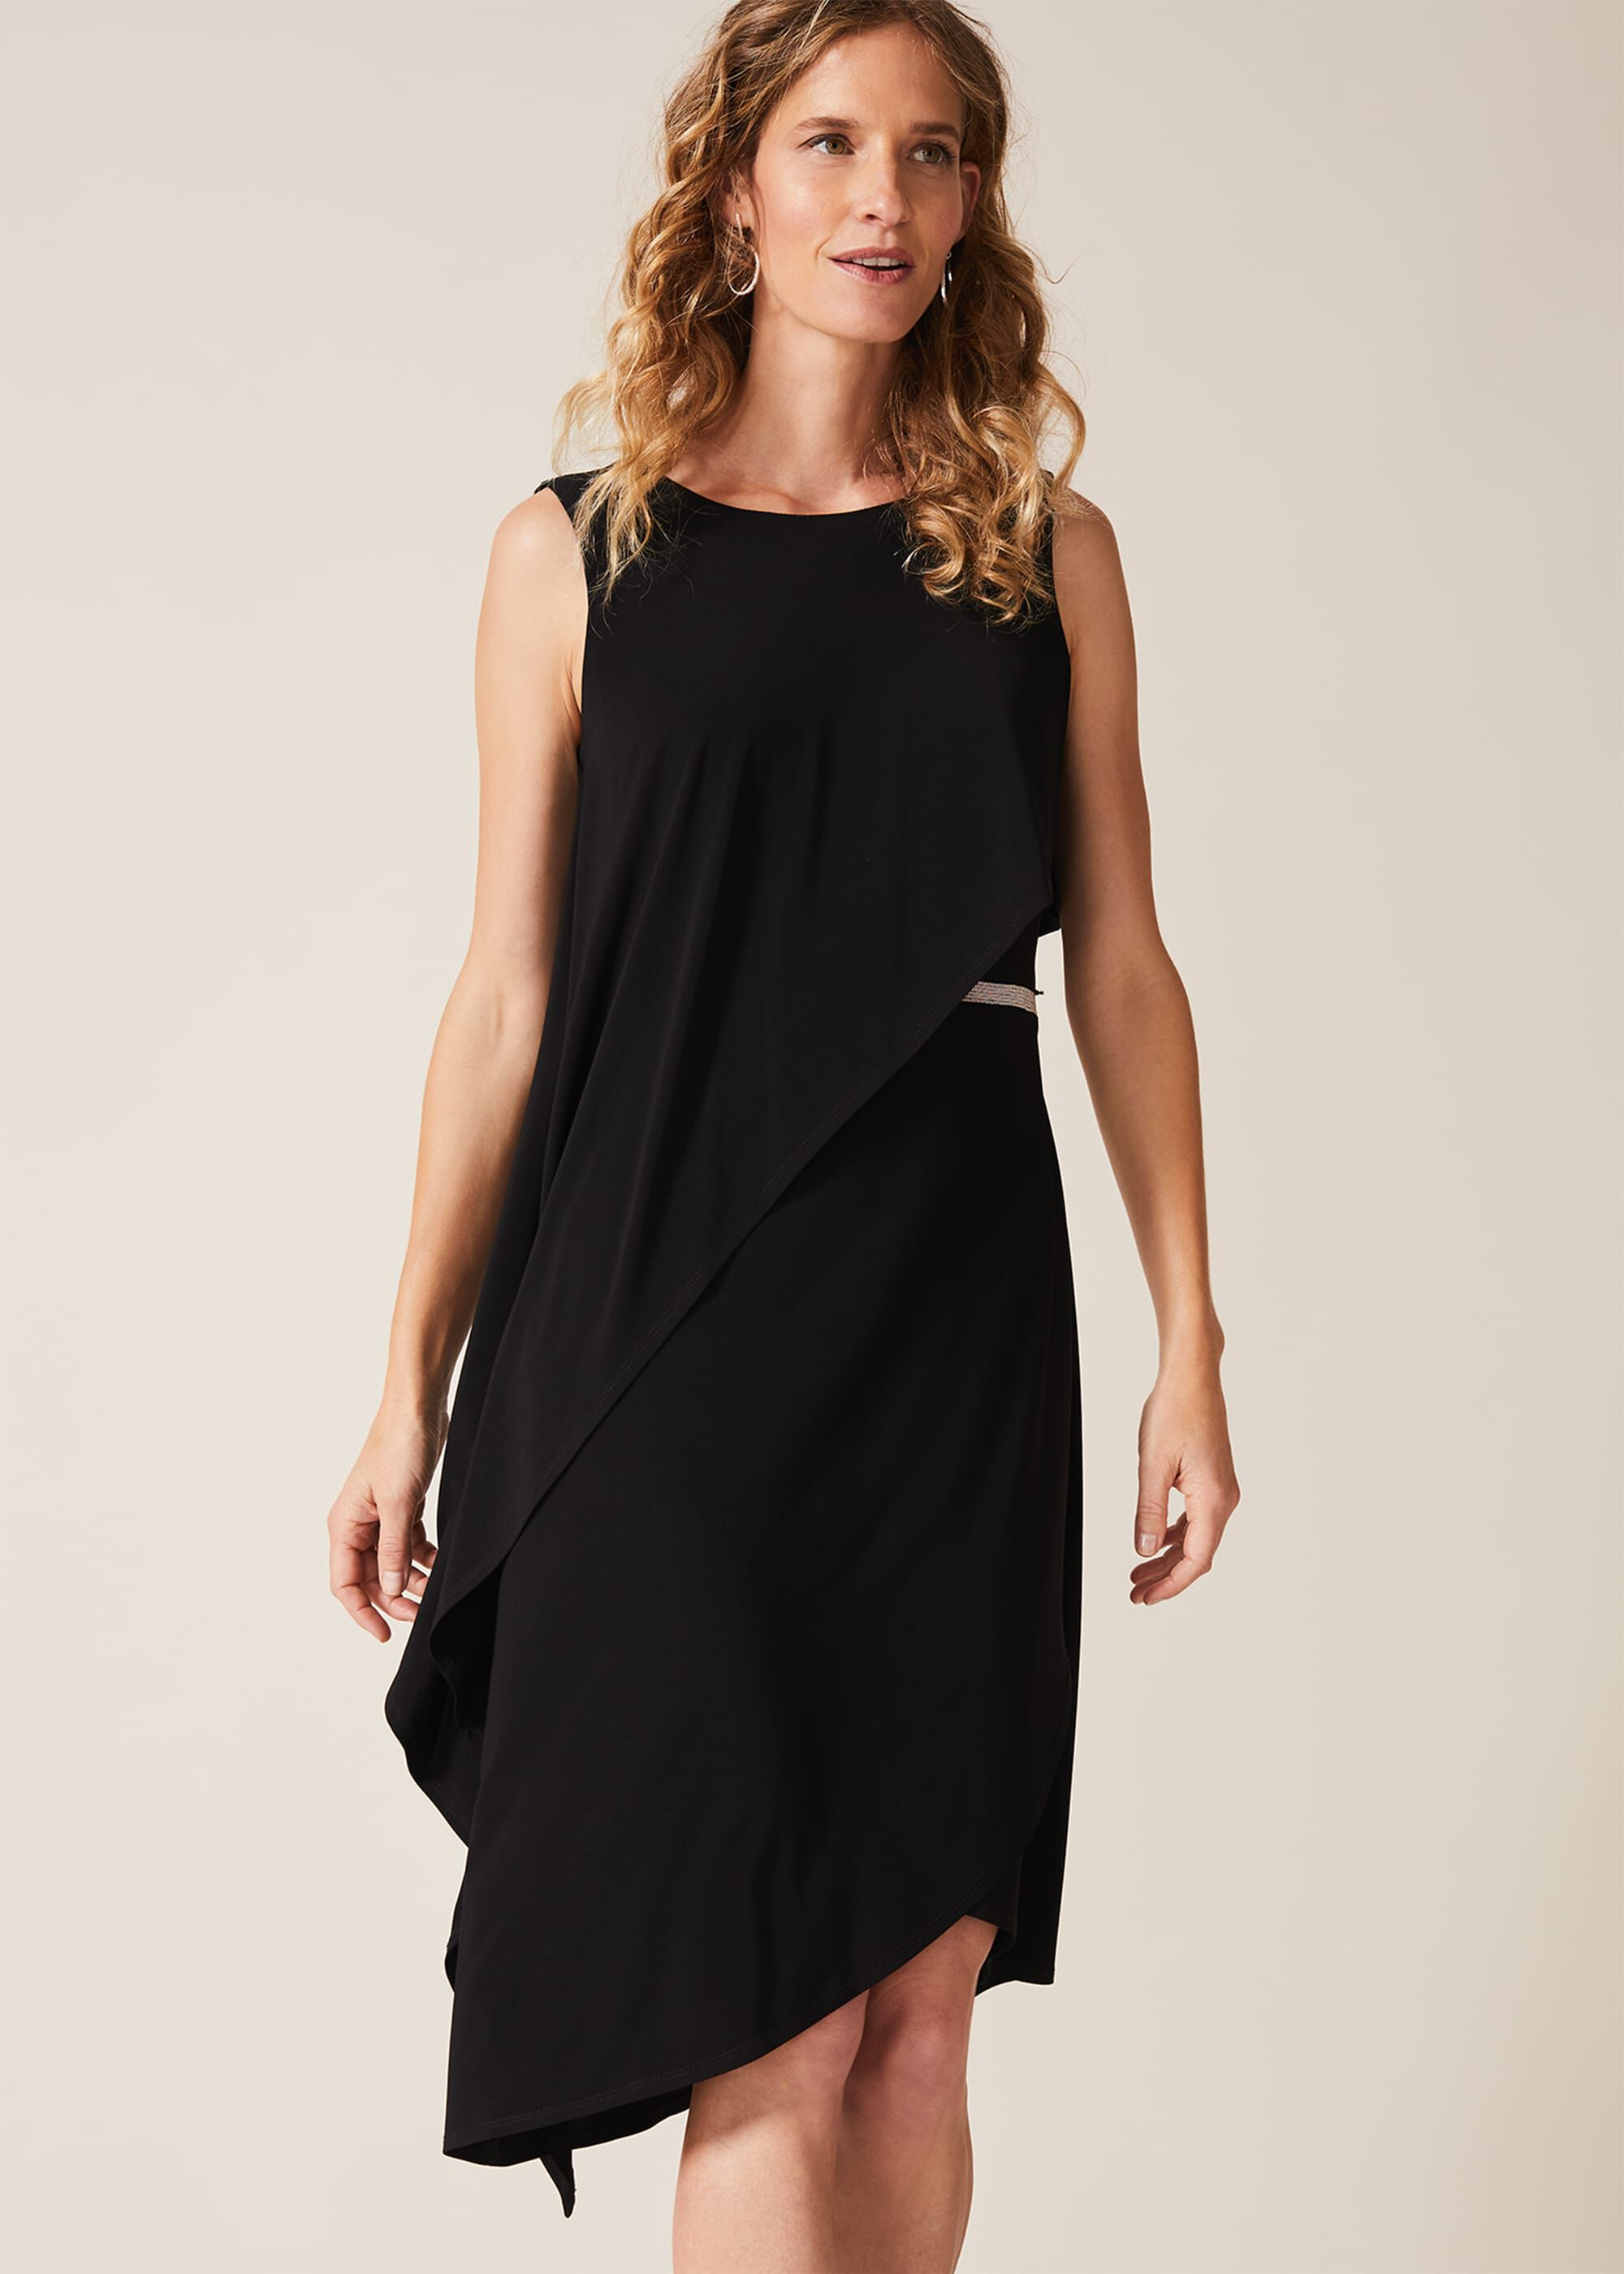 Phase Eight Julitta Bead Trim Overlay Dress, Black, Jersey, Occasion Dress